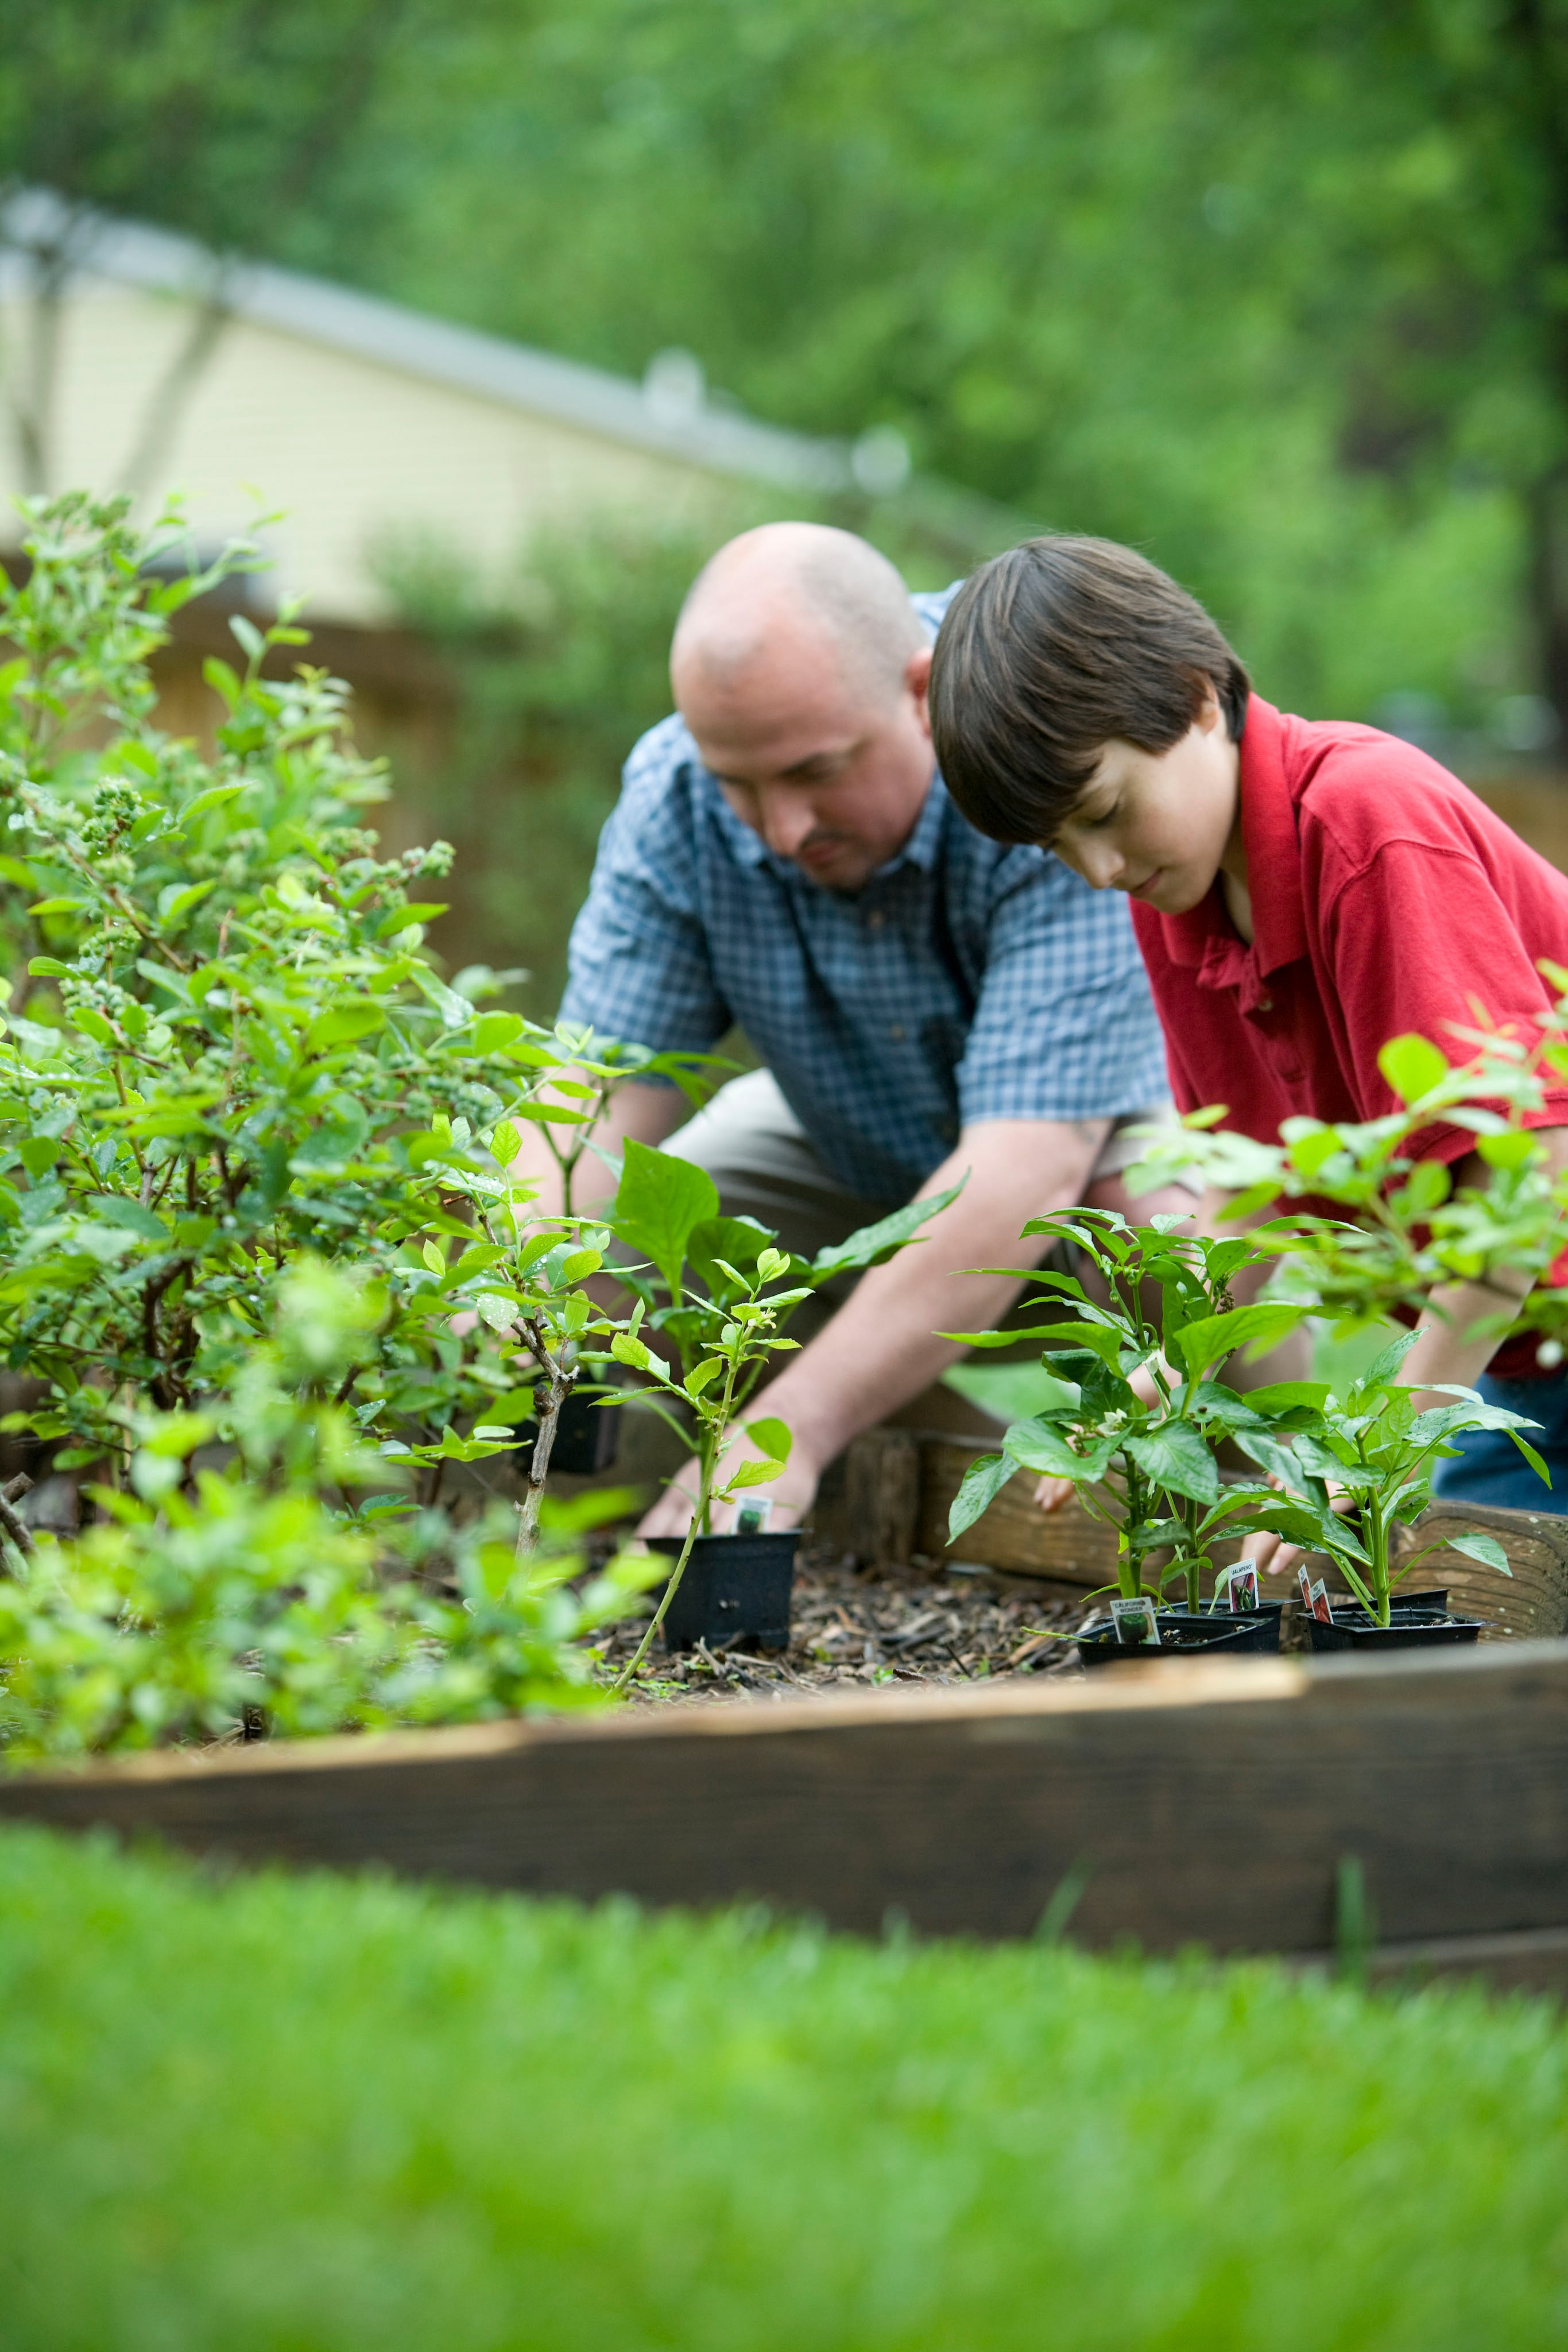 Gardening for Physical Activity